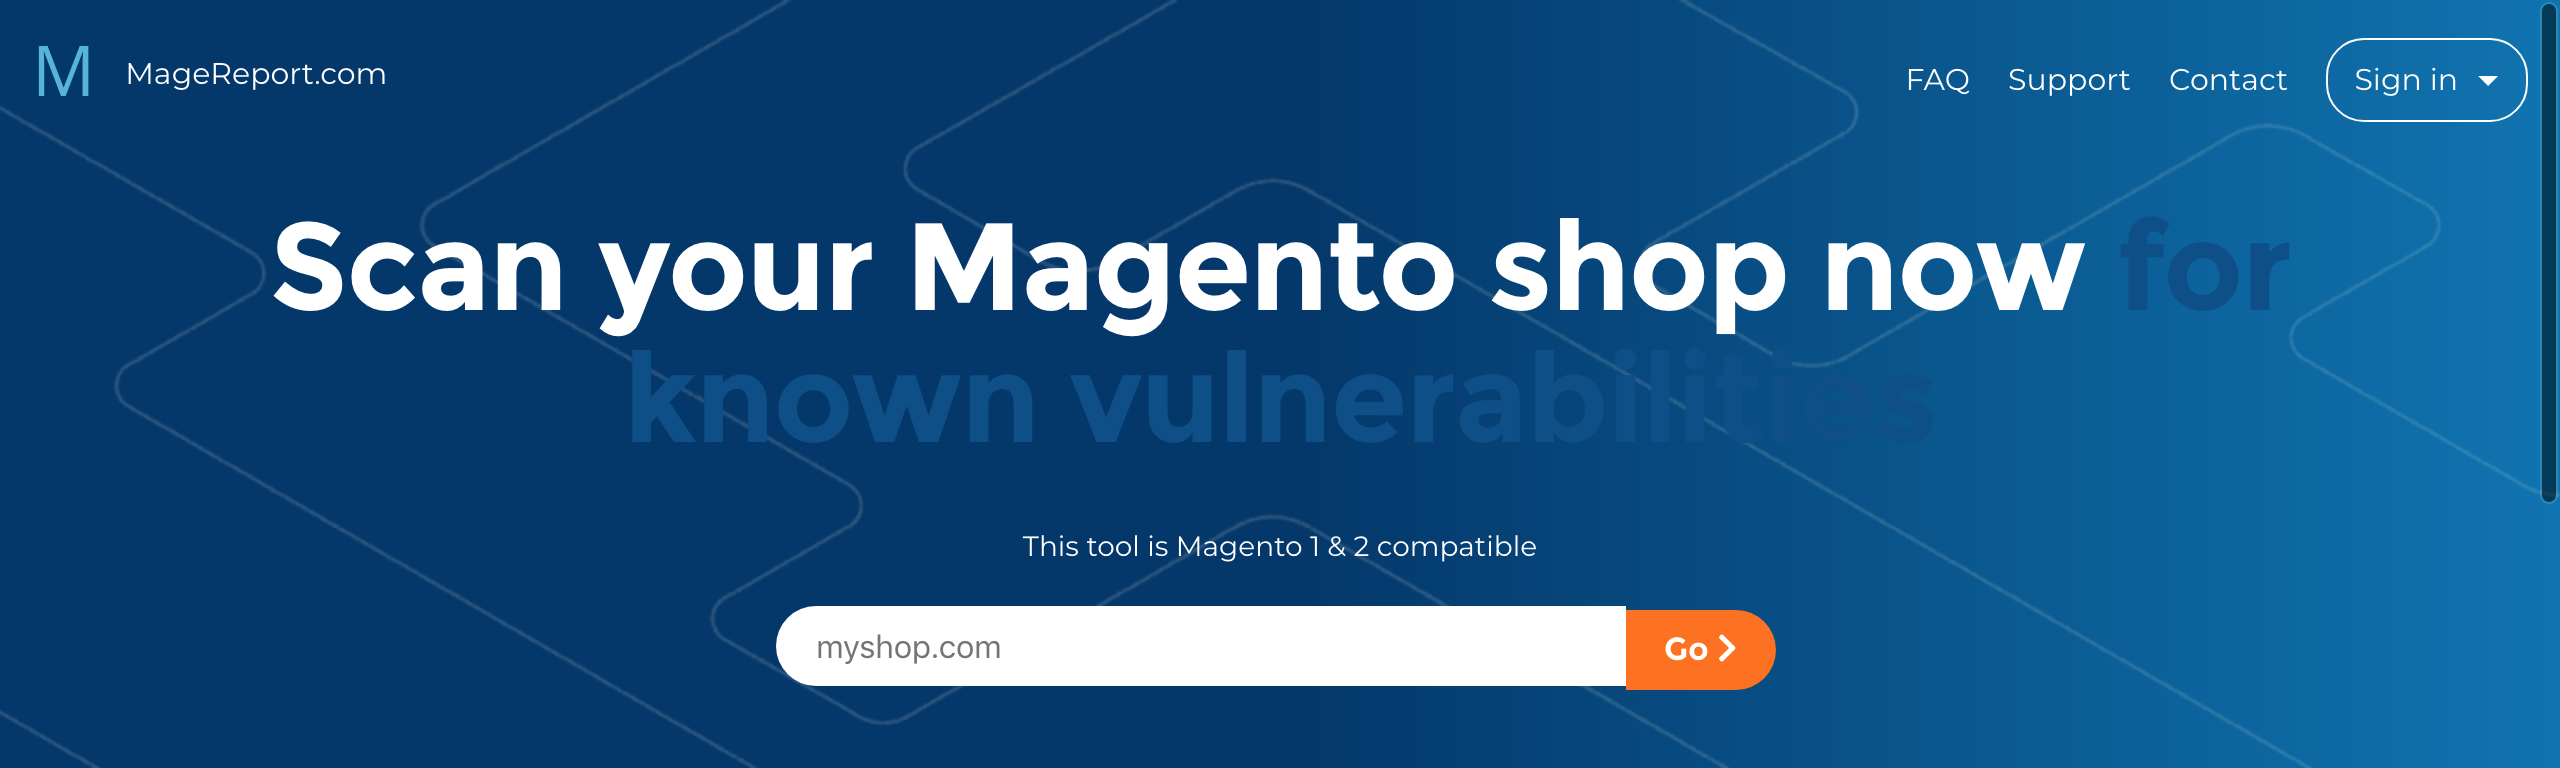 MageReport